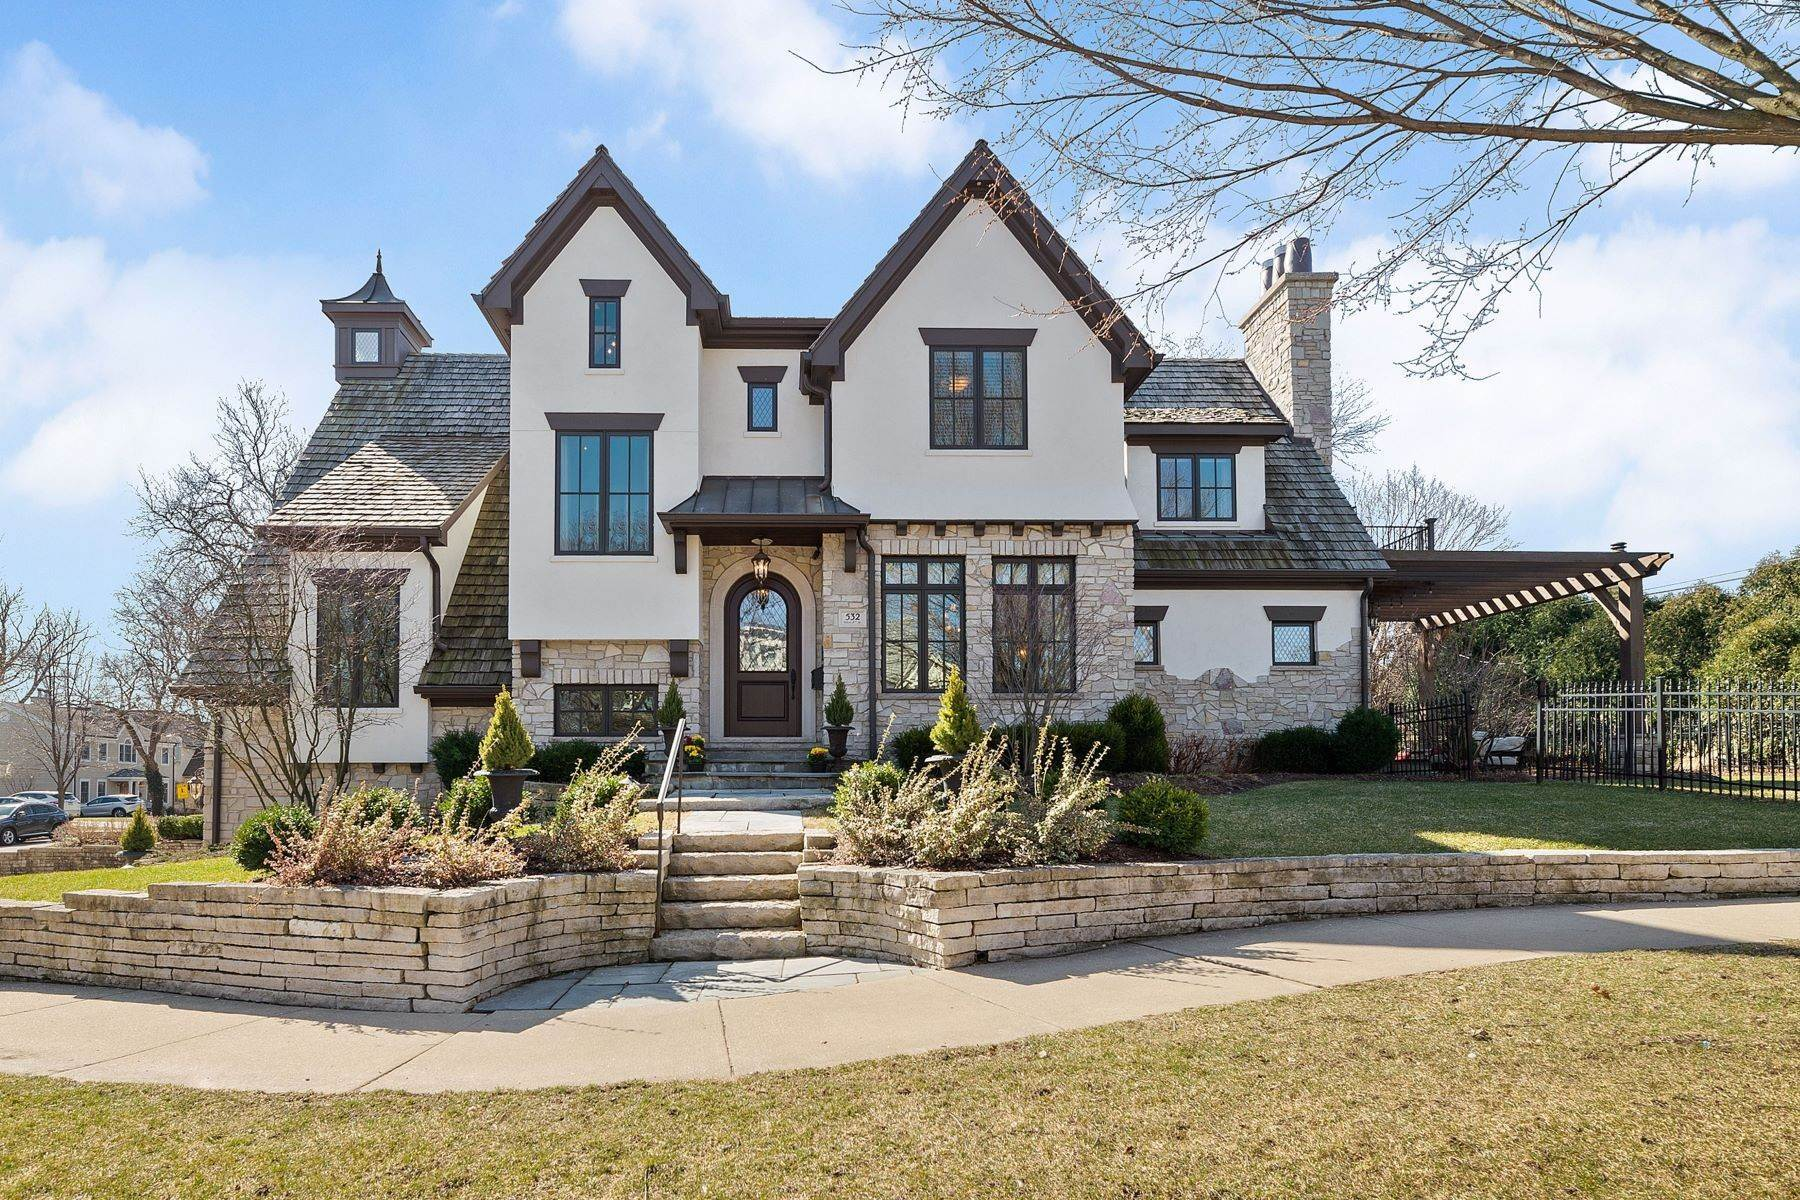 Single Family Homes for Sale at Top To Bottom Fabulous 532 W Eighth Street Hinsdale, Illinois 60521 United States